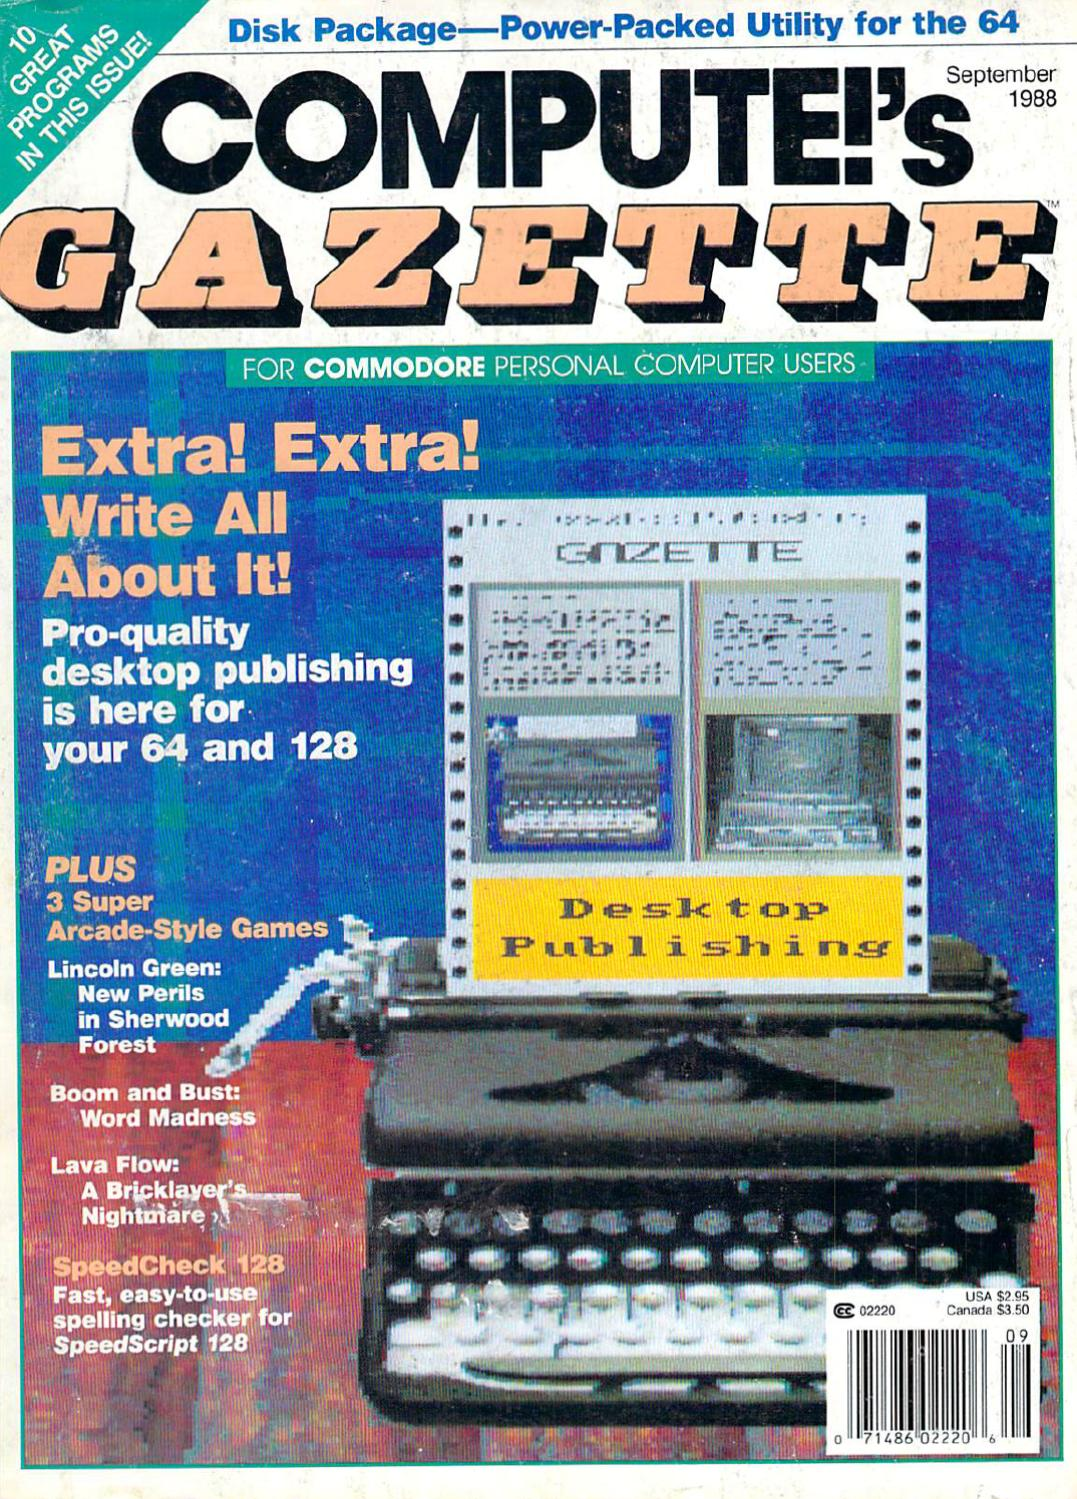 Compute_Gazette_Issue_63_1988_Sep by Zetmoon - issuu